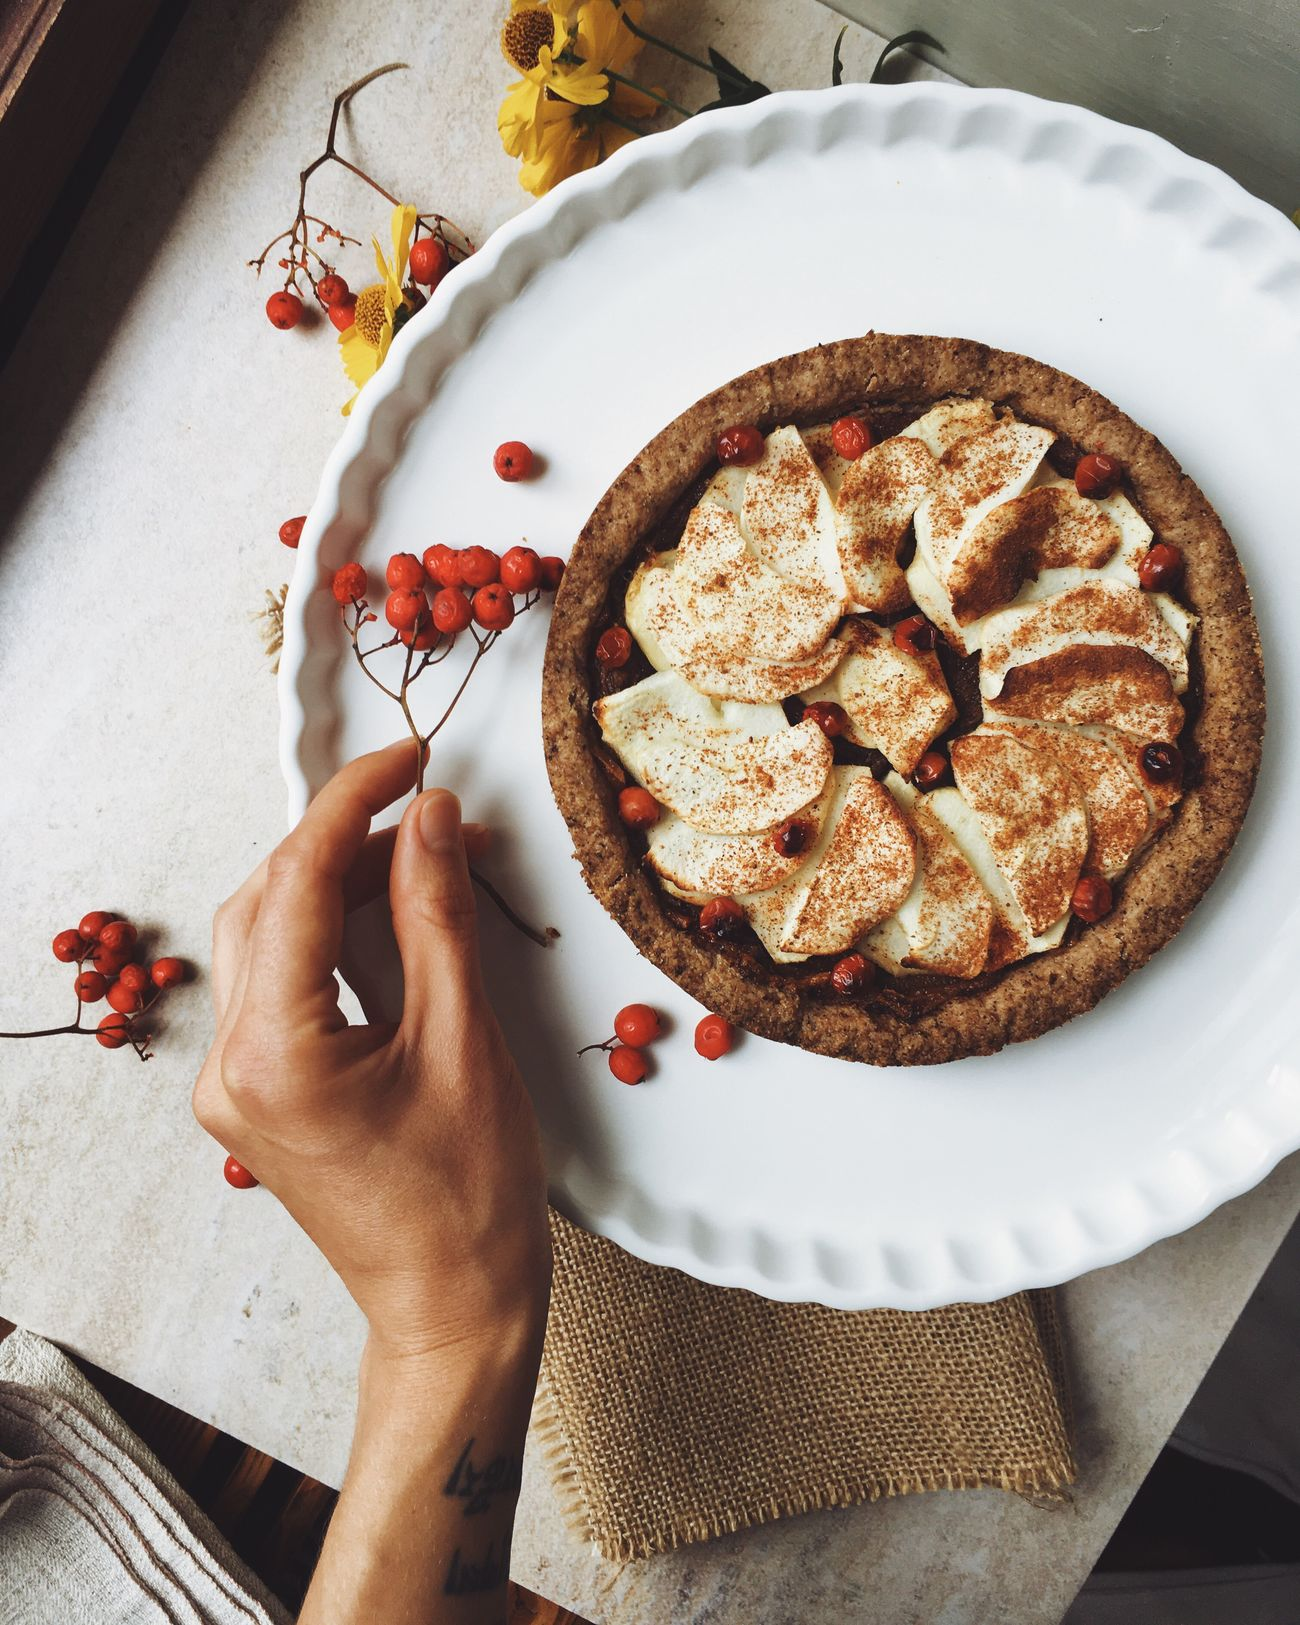 Homemade vegan apple pie. Food Healthy Eating Vegan Vegan Food Plantbased Pie Apples Foodphotography First Eyeem Photo